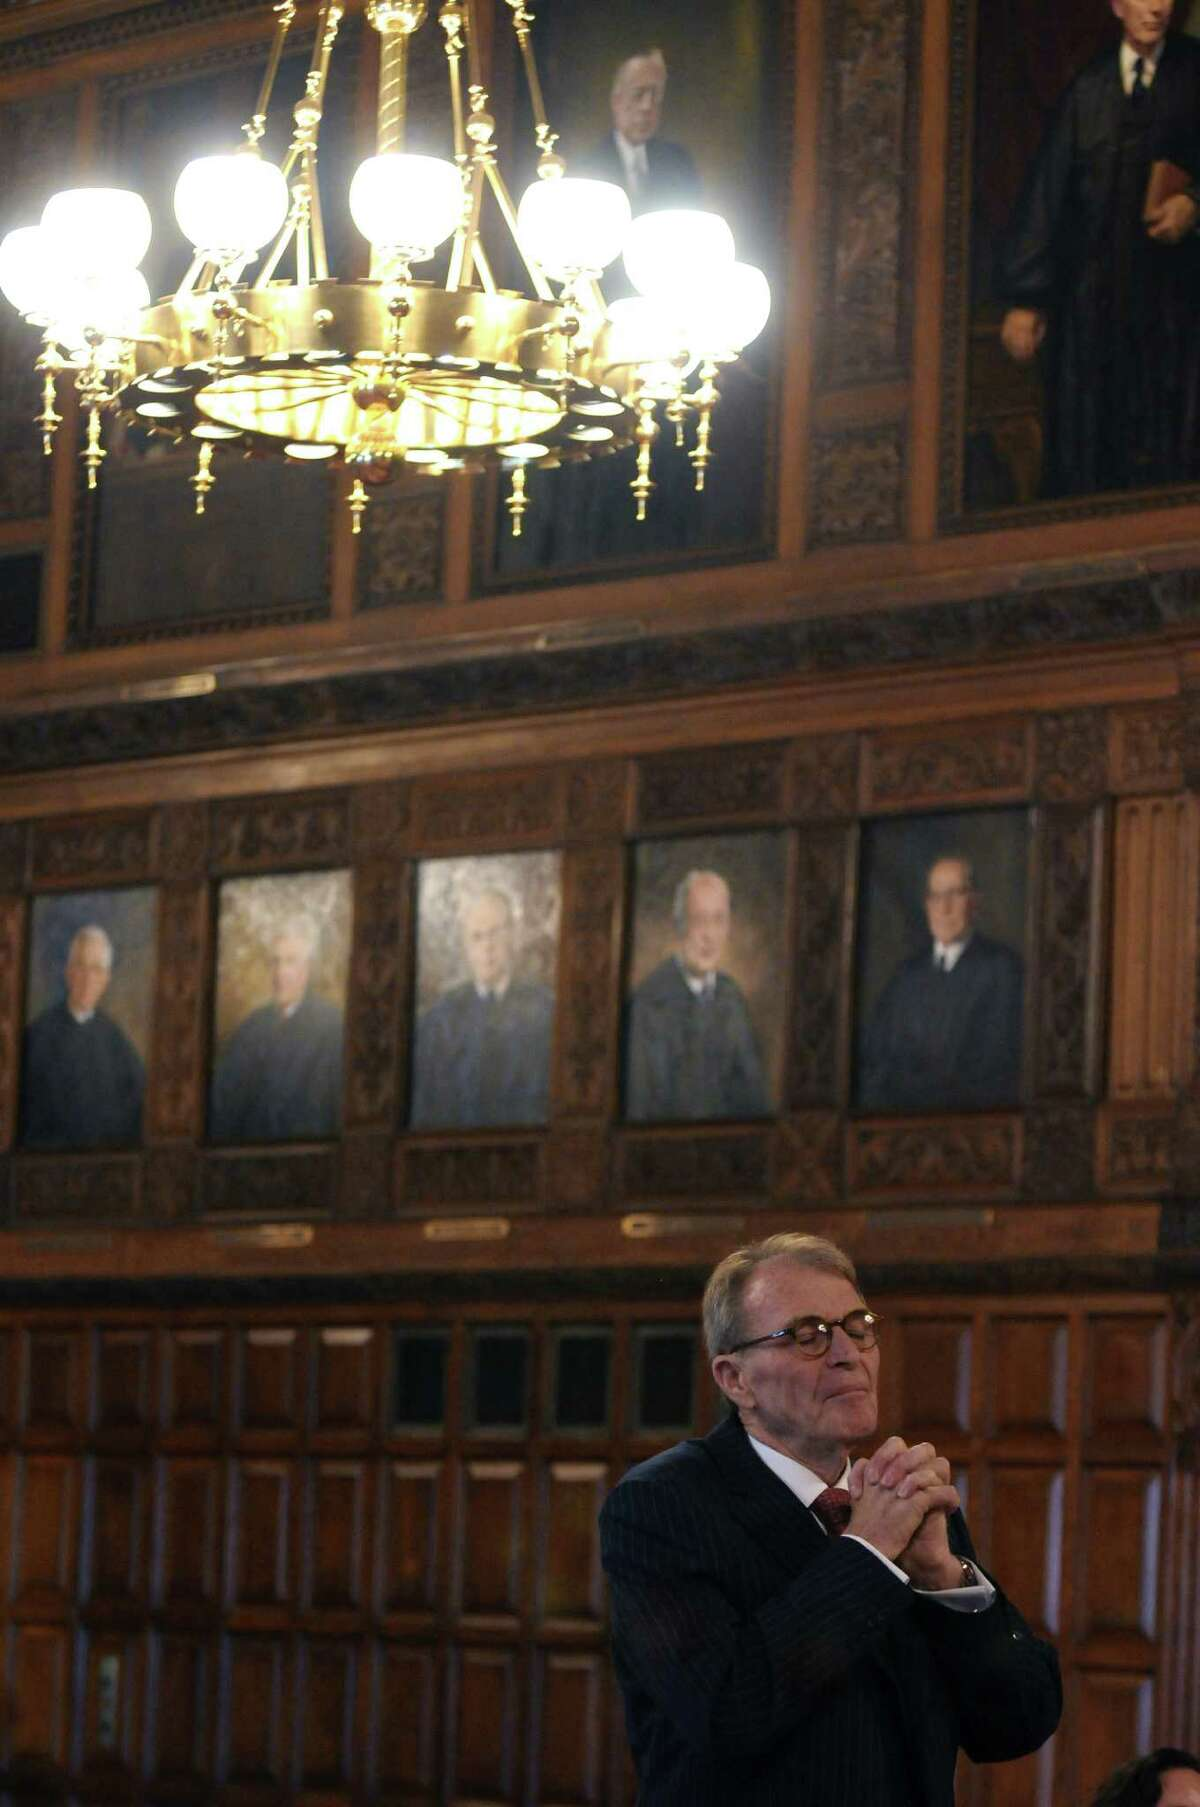 Defense attorney Terence L. Kindlon makes his case to the justices of the New York State Court of Appeals during the appeal of Christopher Porco's murder and attempted murder conviction, on Tuesday Sept. 13, 2011 in Albany, NY.( Philip Kamrass / Times Union)